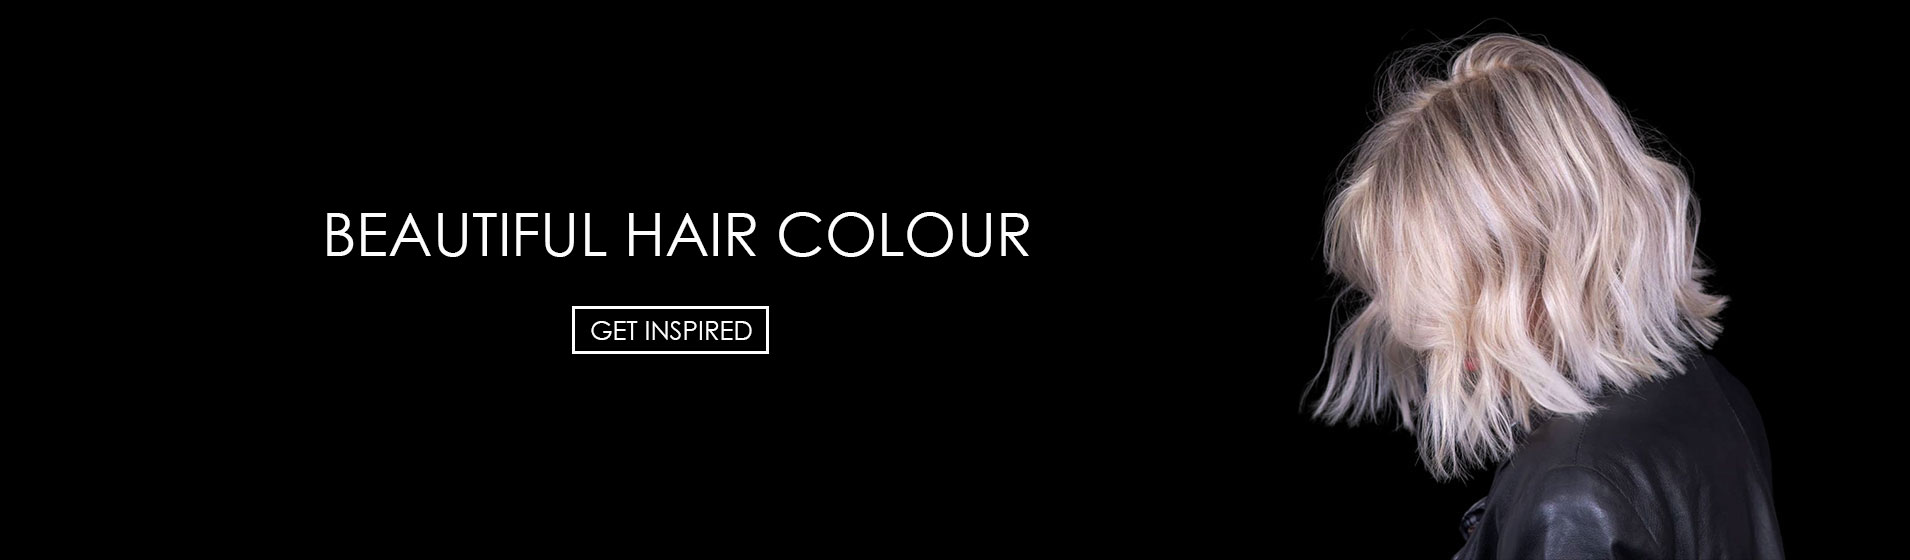 HAIR COLOUR SERVICES IN OXTED, SURREY AT ELEMENTS HAIR & BEAUTY SALON